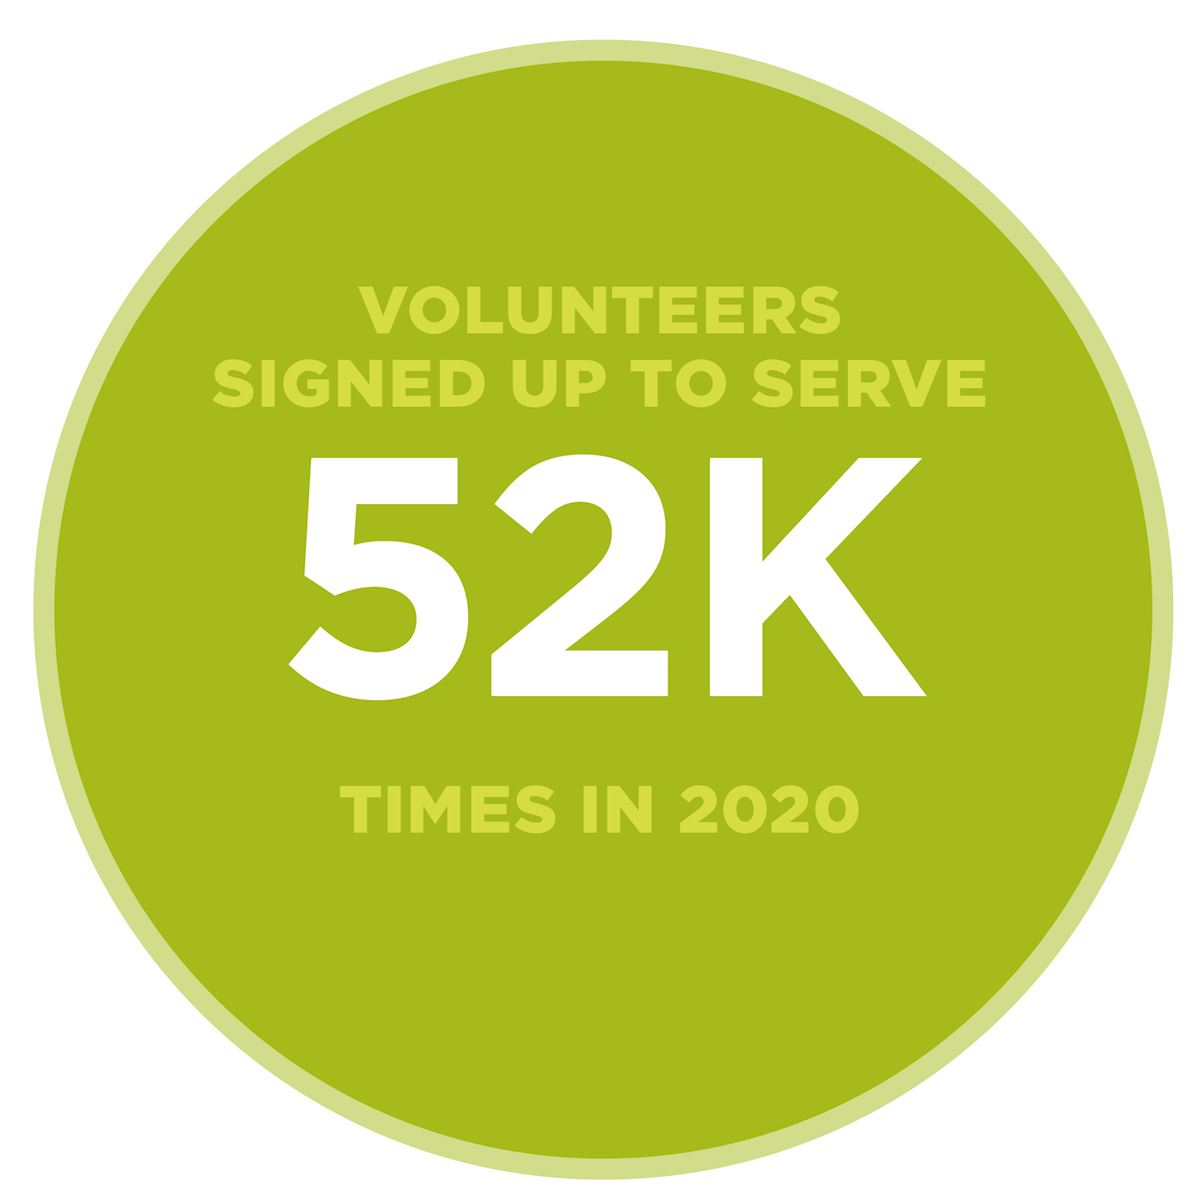 Volunteers signed up to serve 52,000 times in 2020